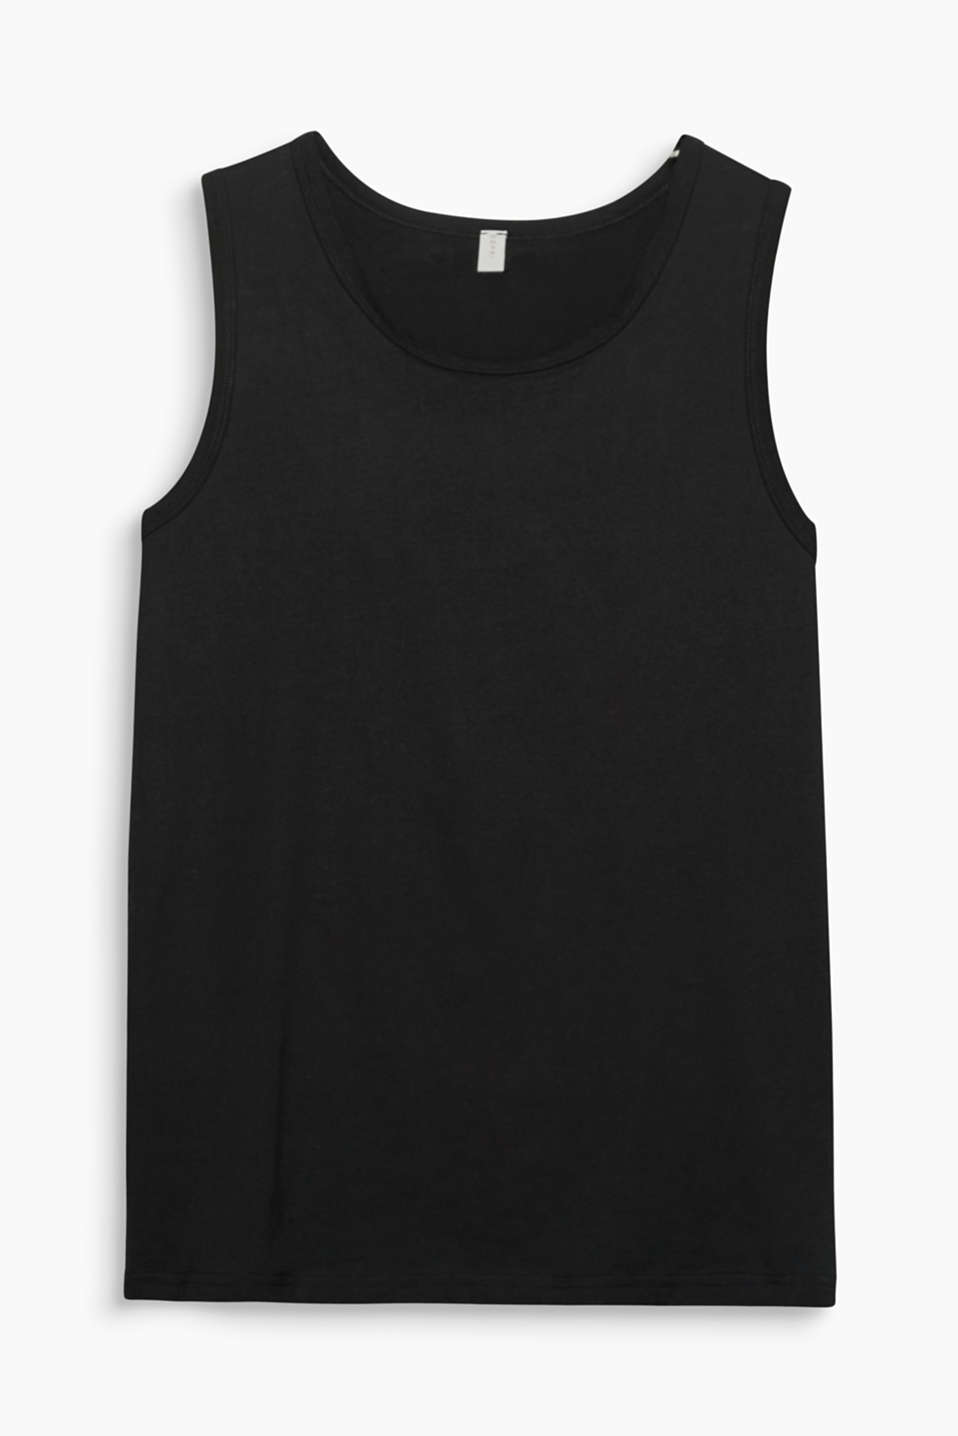 Esprit - Basic-top i 100% bomuld